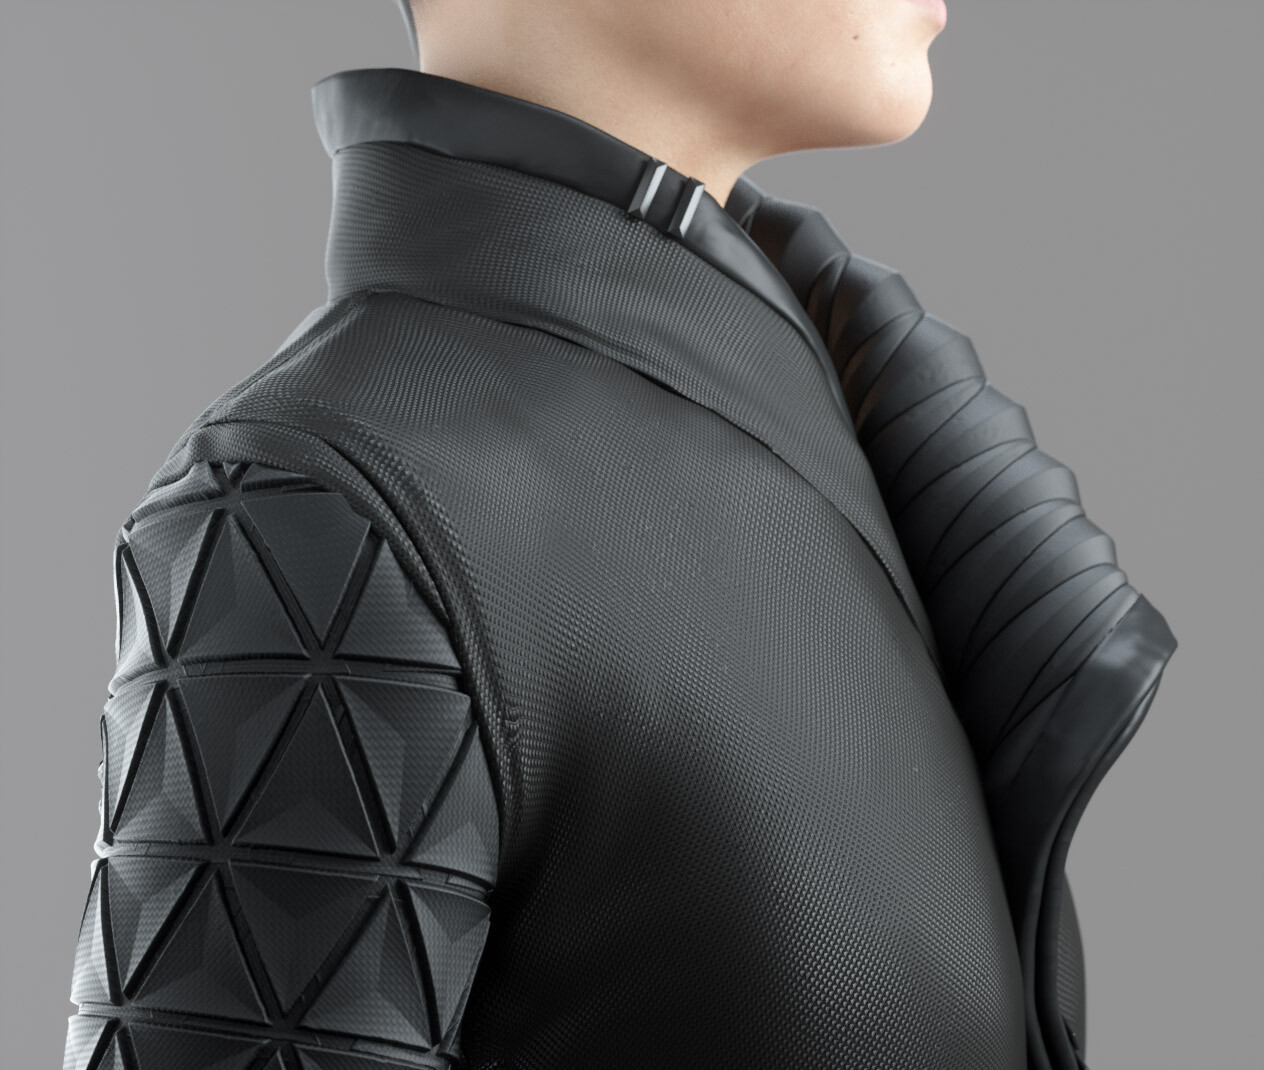 Micro details, geosphere normal pattern scaled down to create micro fabric detail